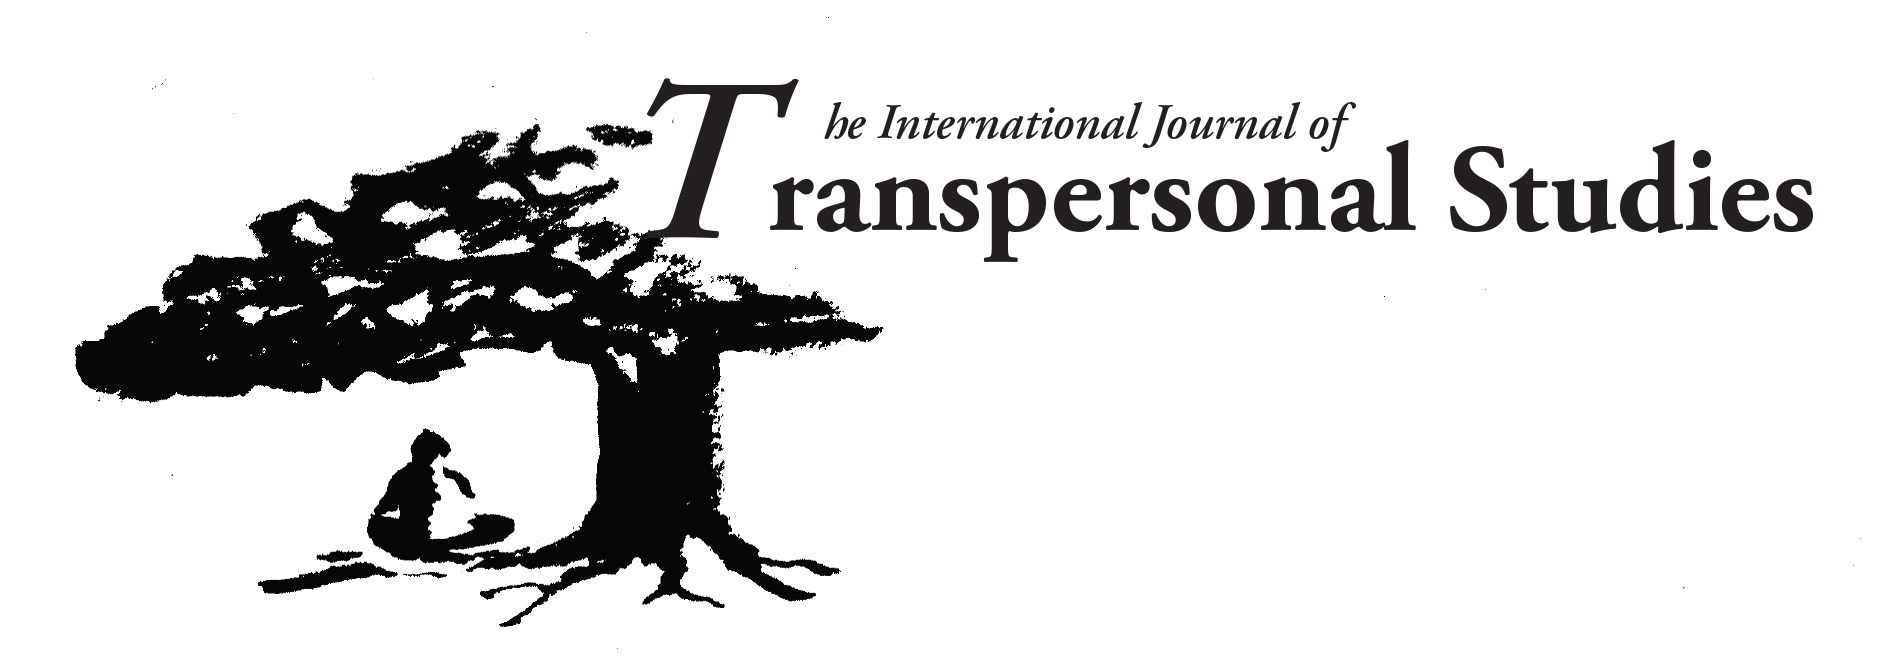 The International Journal of Transpersonal Studies